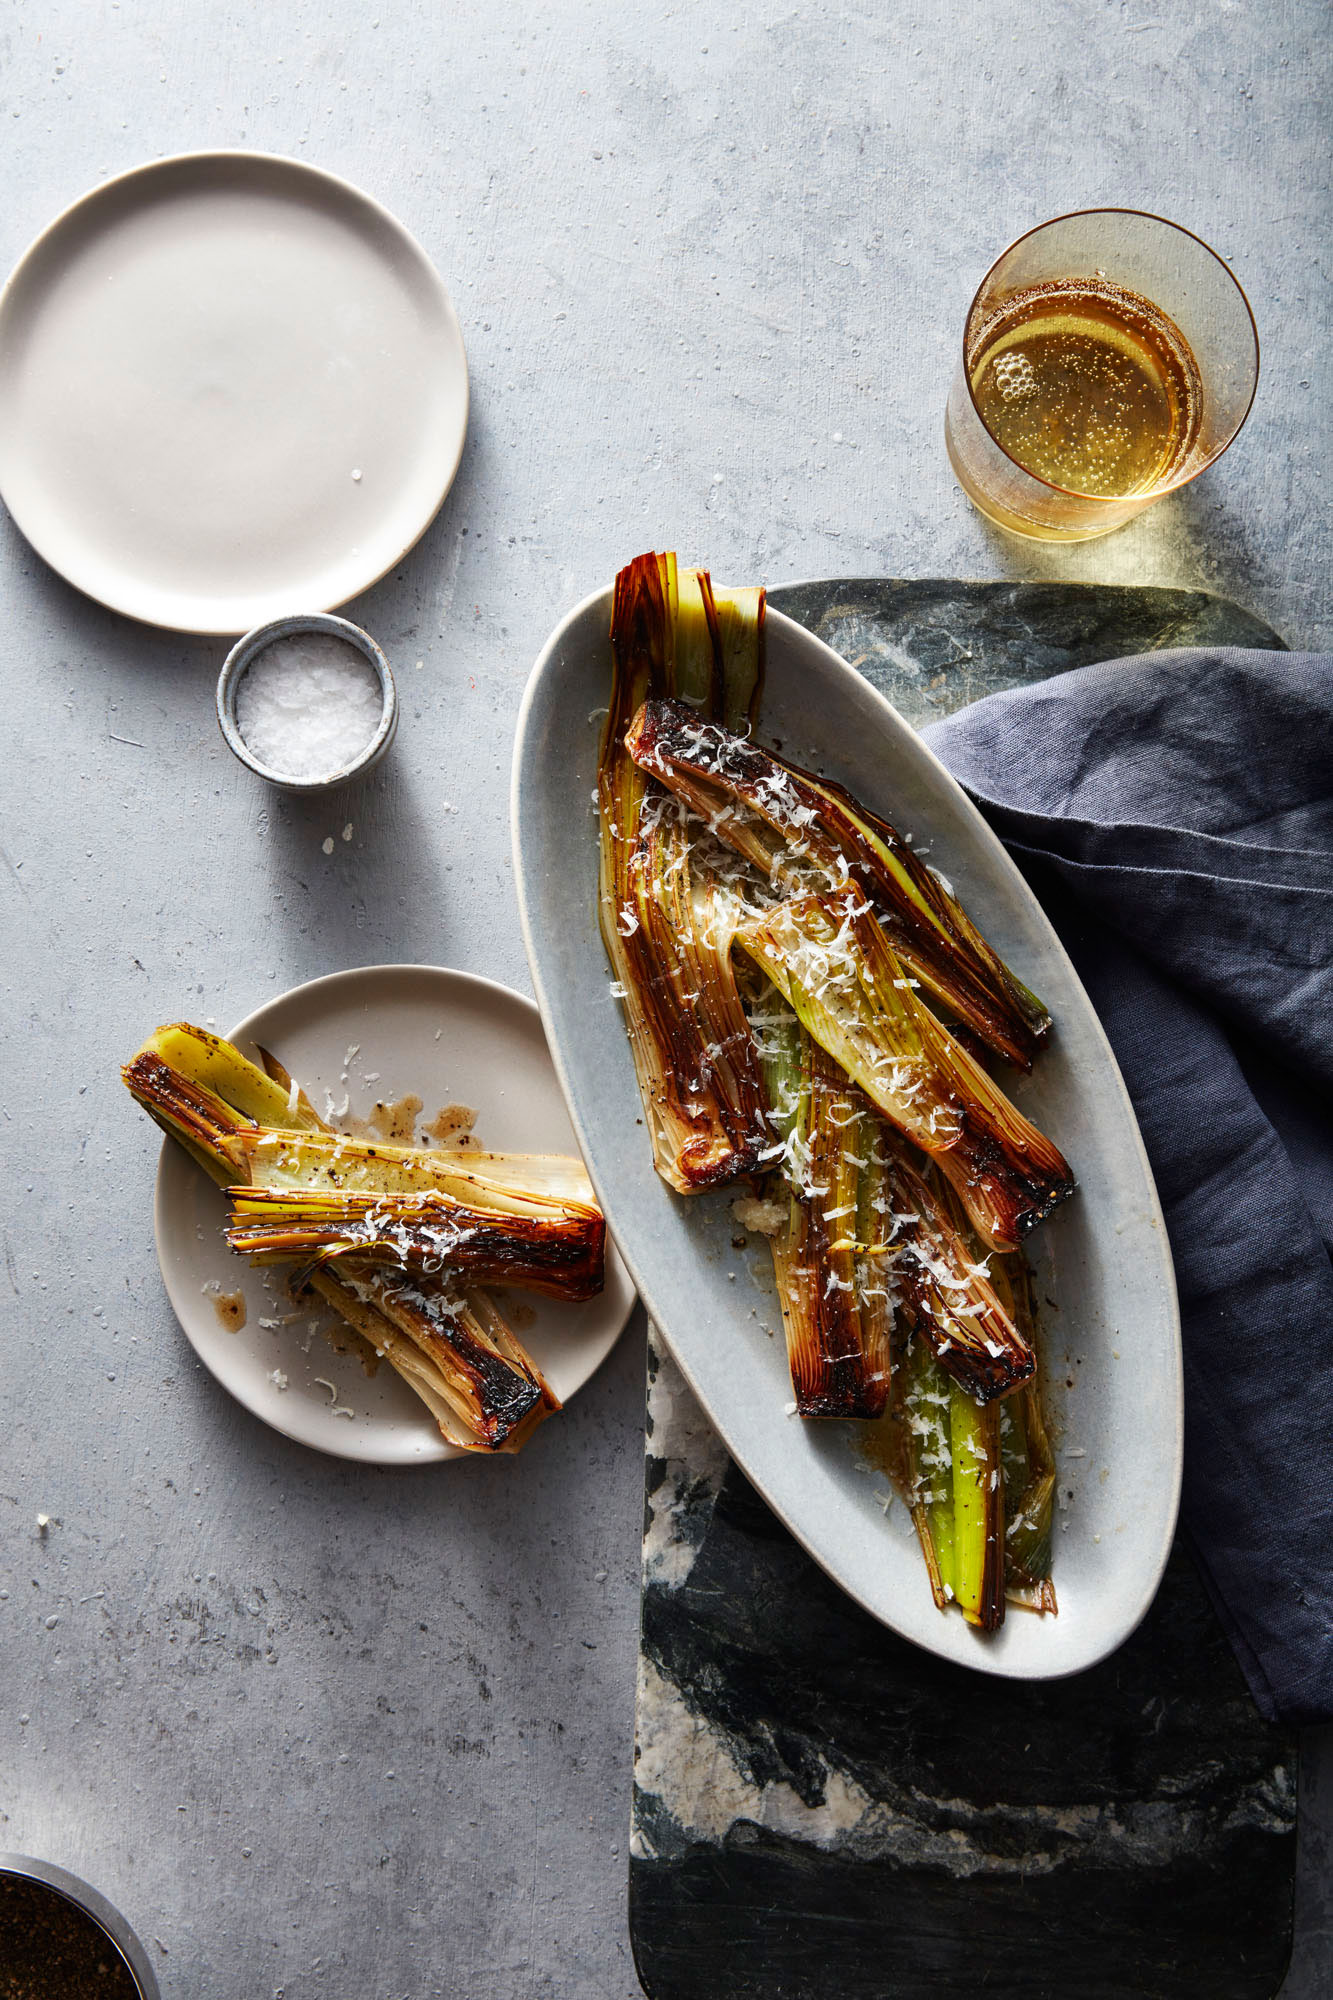 Braised Leeks with Parmesan